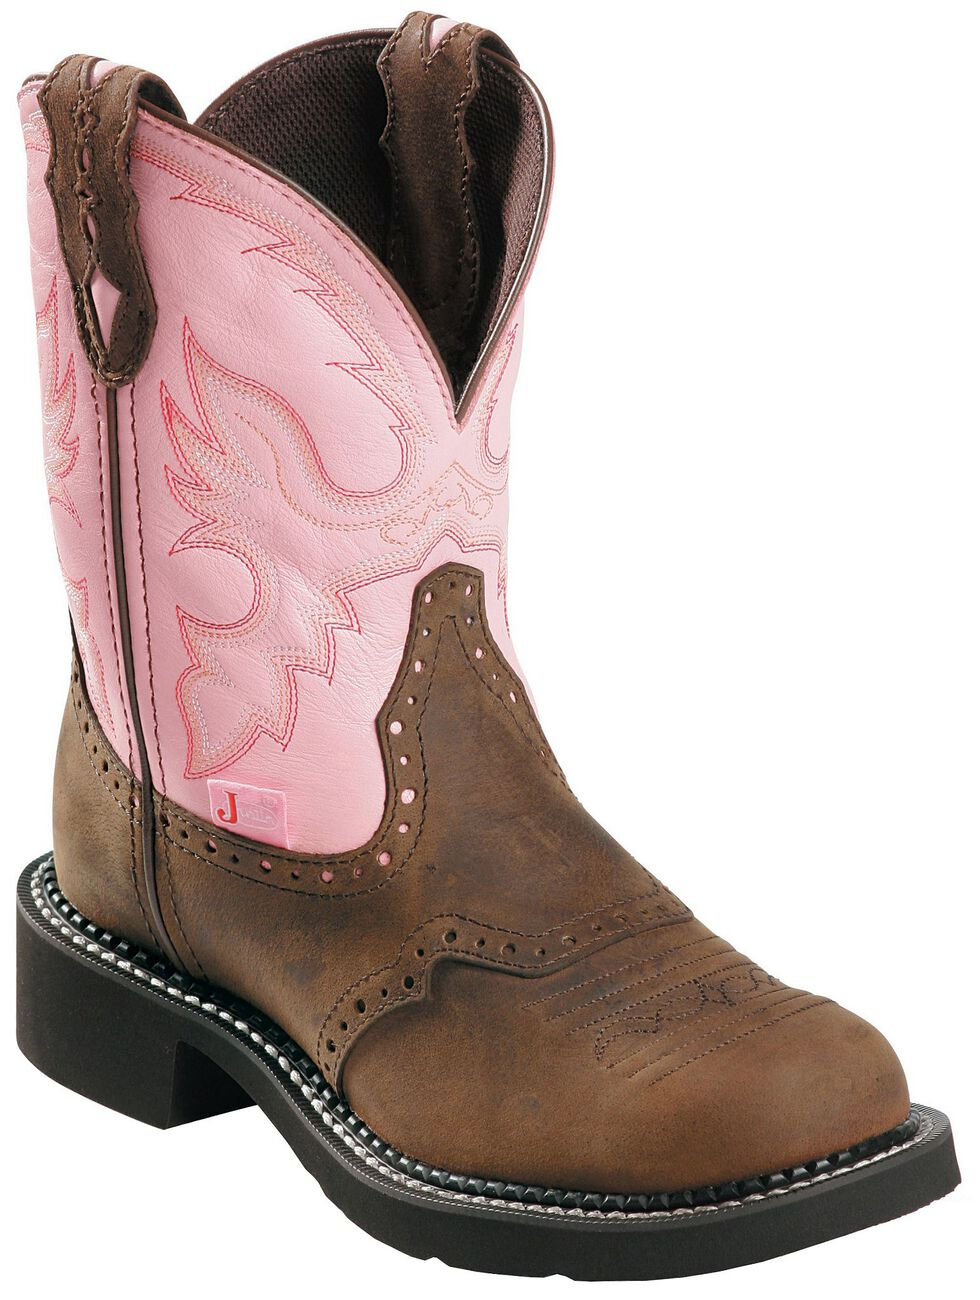 Justin Gypsy Women's Wanette Pink Work Boots - Steel Toe, , hi-res